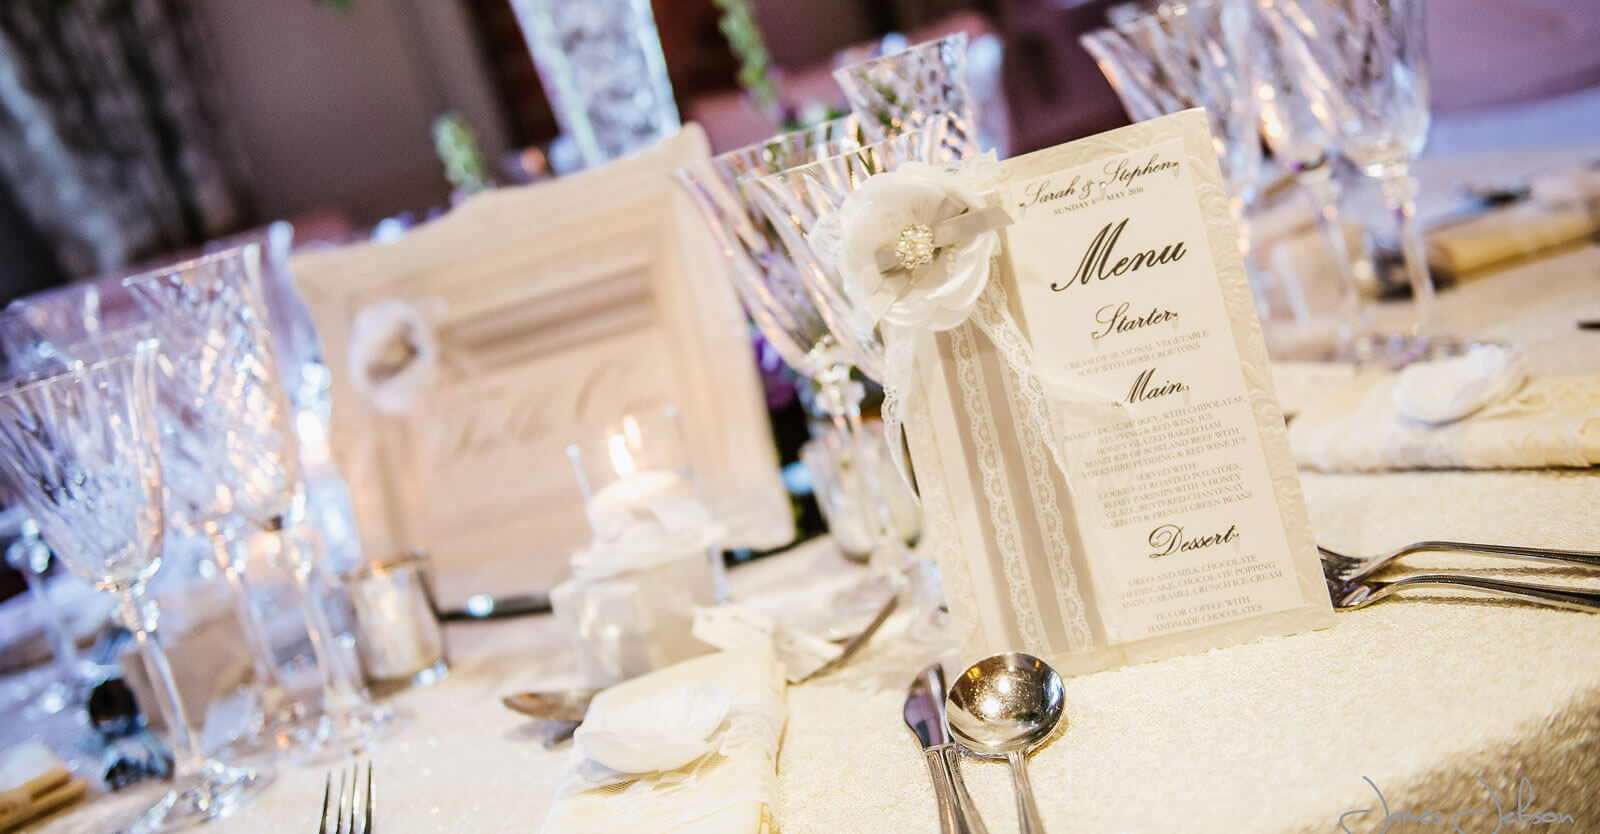 White peony flower & lace decorated table number, menu & napkin dressing